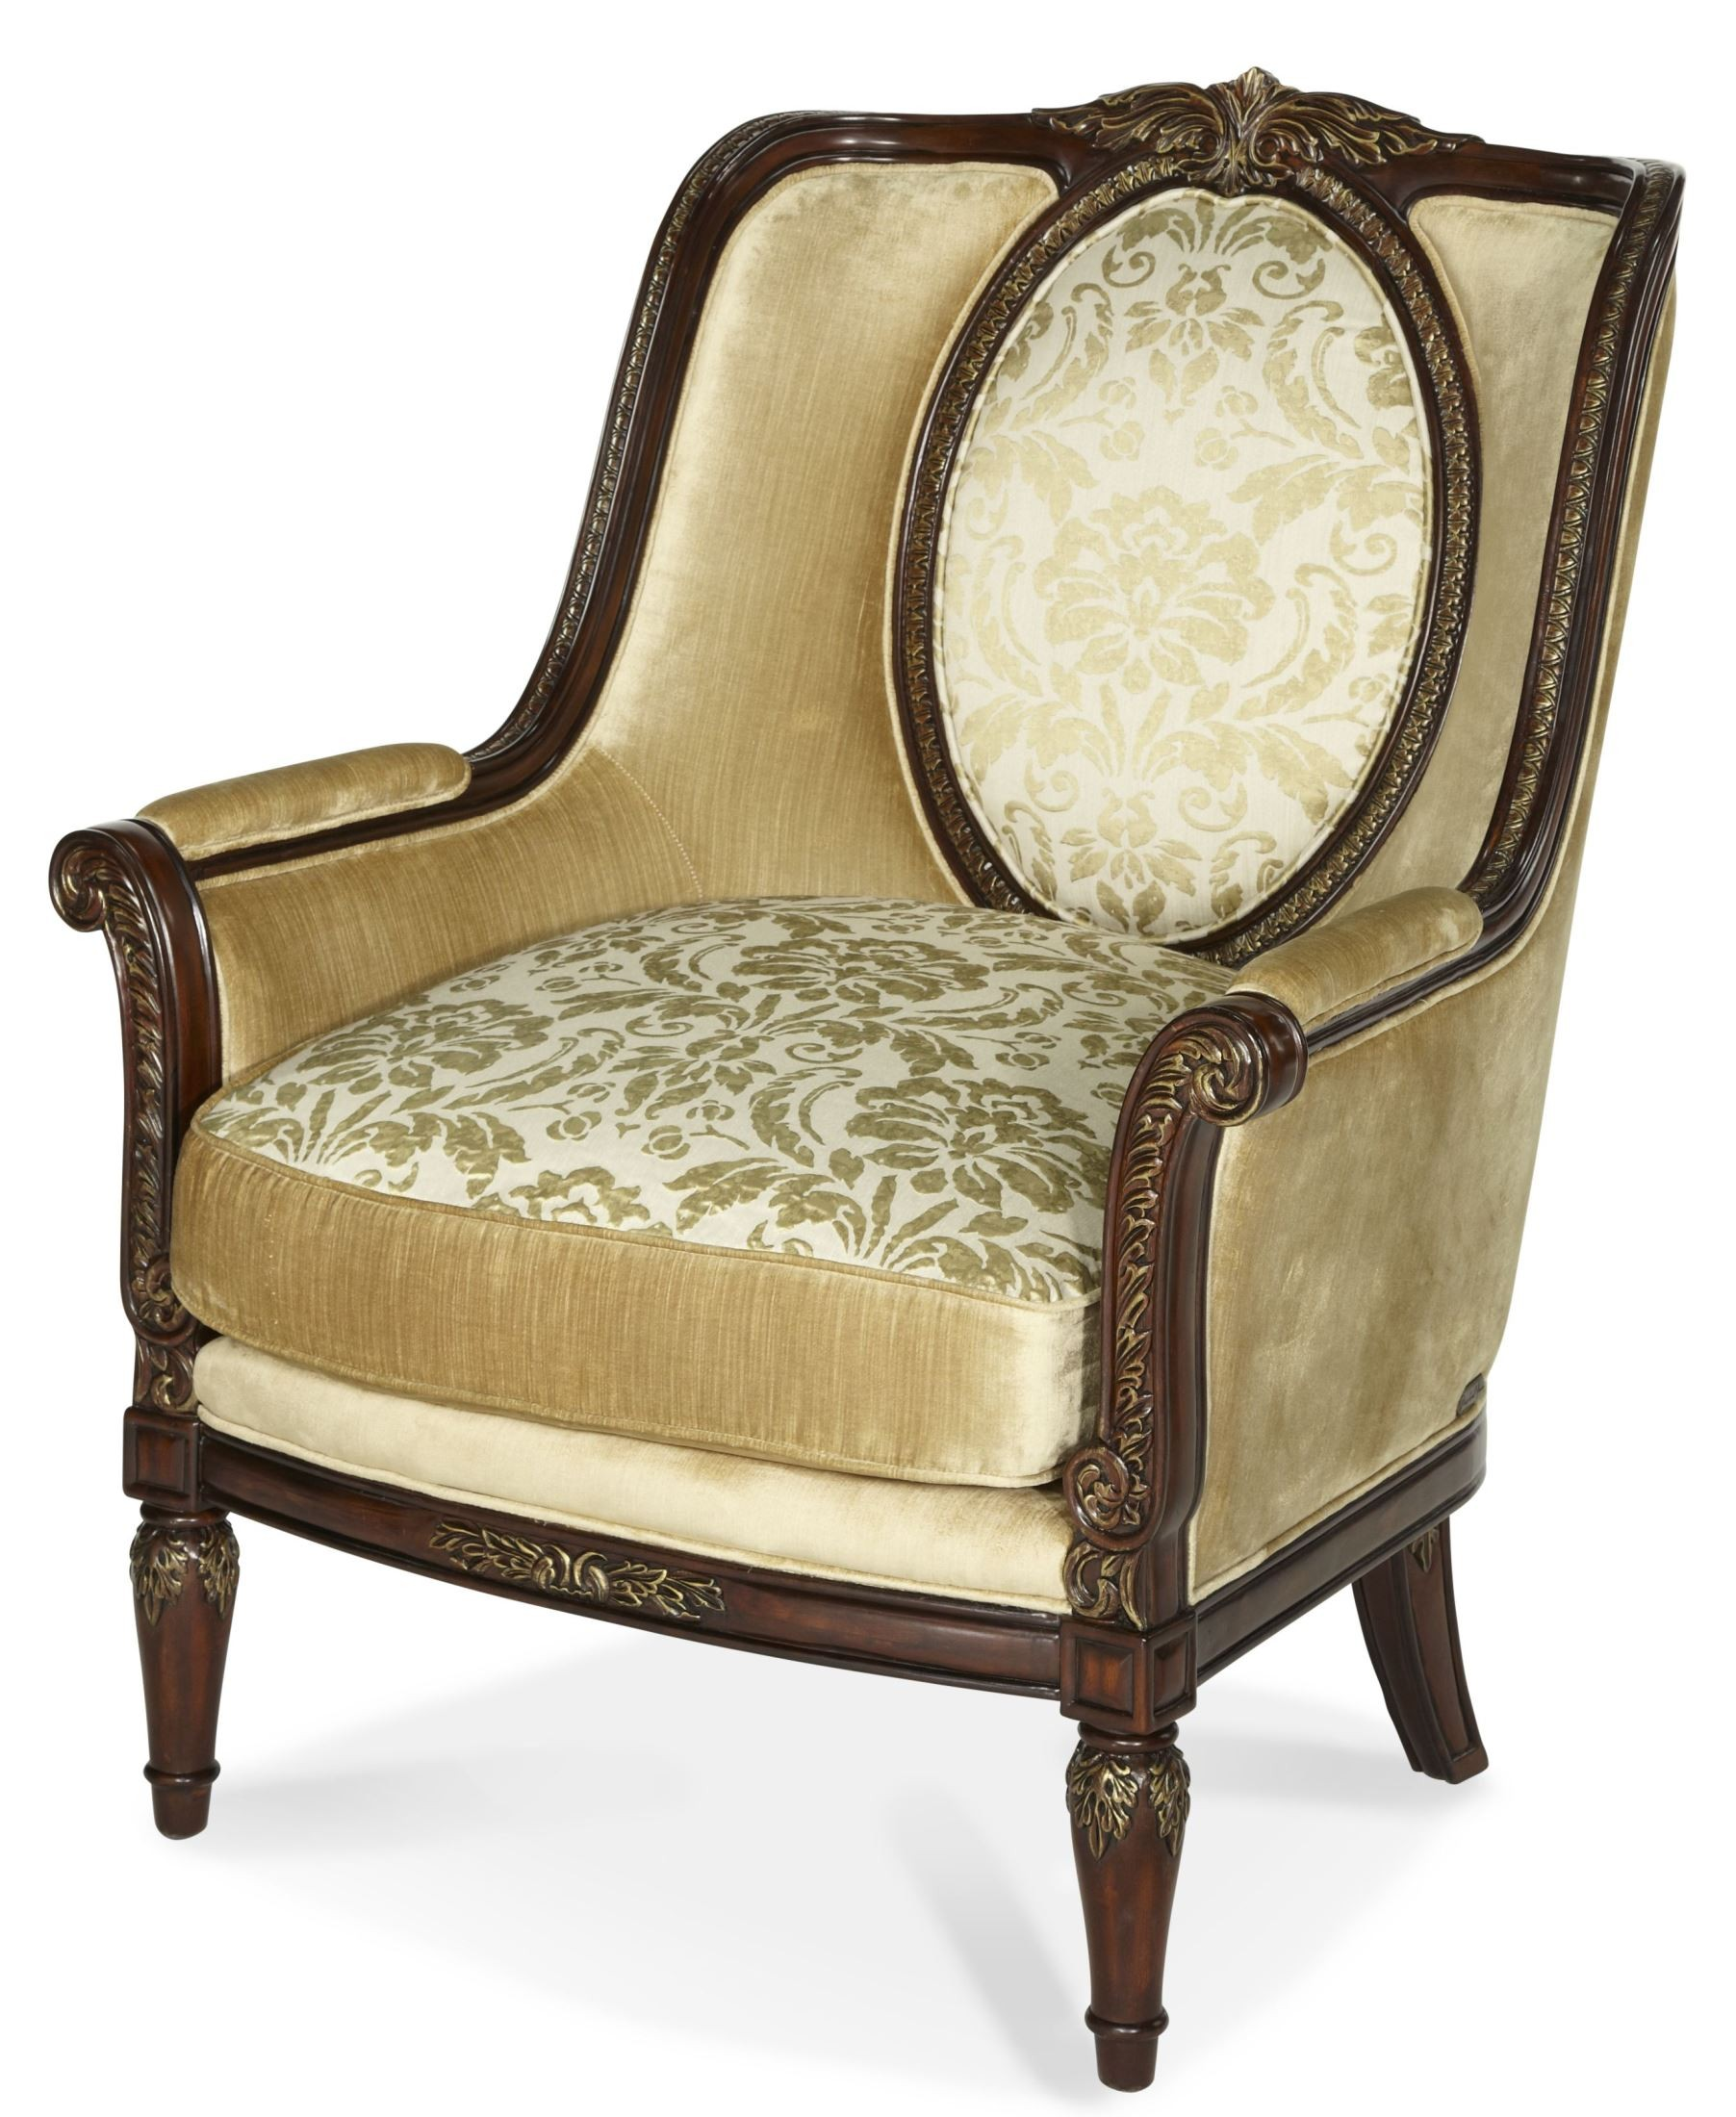 Wood Courtroom Chair Sale ~ Imperial court wood trim chair from aico chpgn